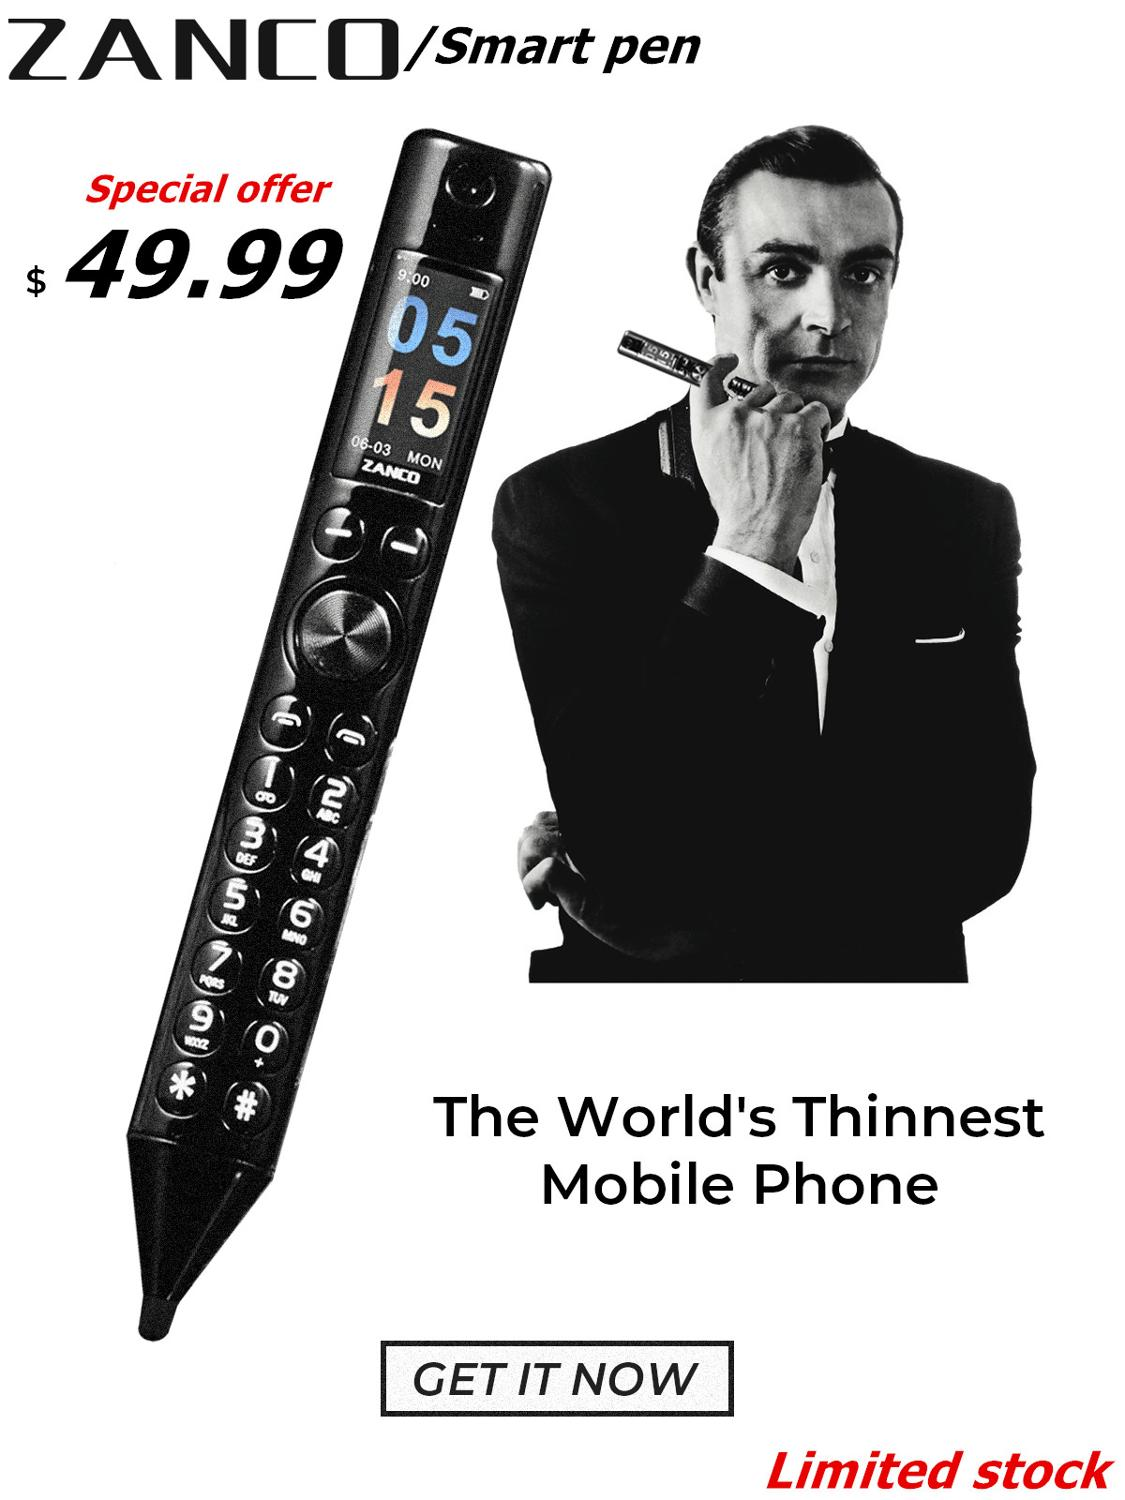 ZANCO Smart Pen World Thinnest Mobile Phone -Special Offer